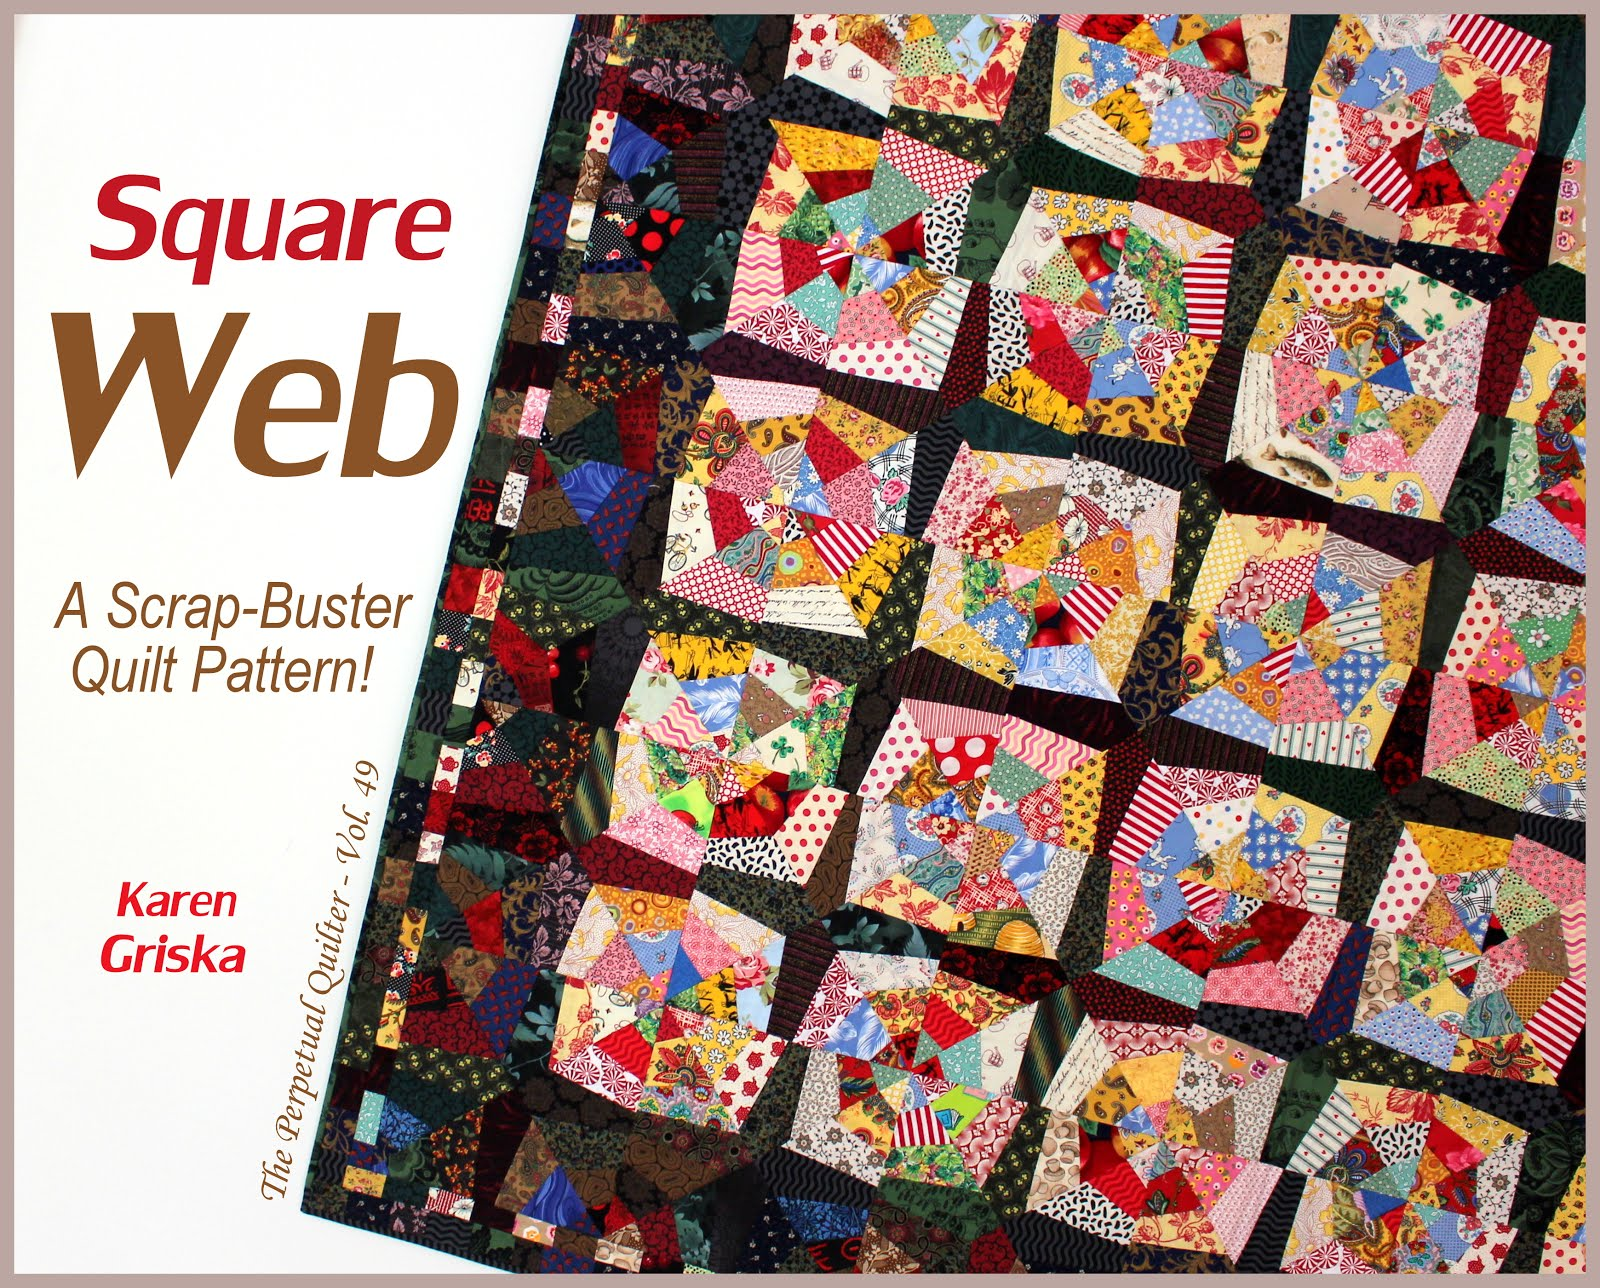 Square Web Quilt Pattern!